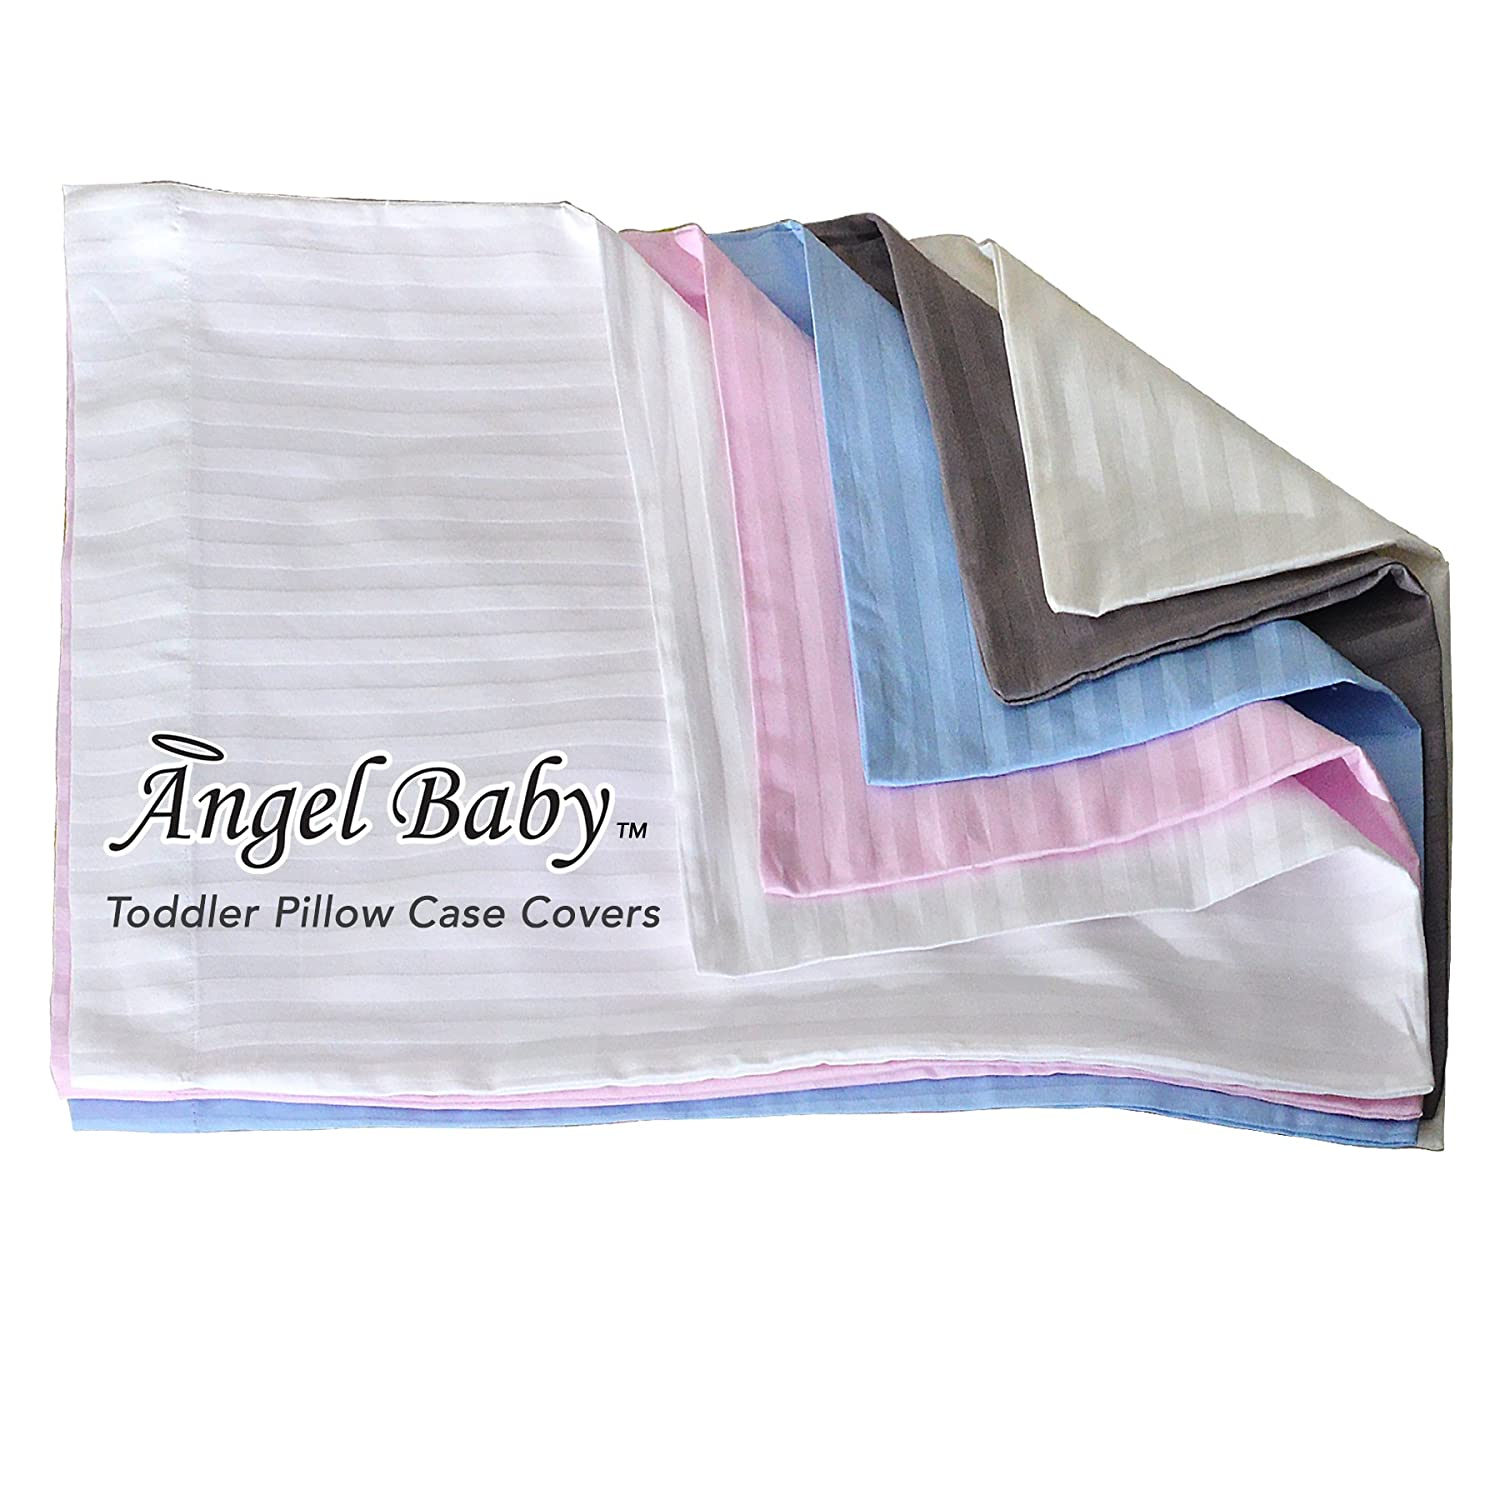 adoric toddler pillowcase s hypoallergenic life case ebay pillow material with p kids filling